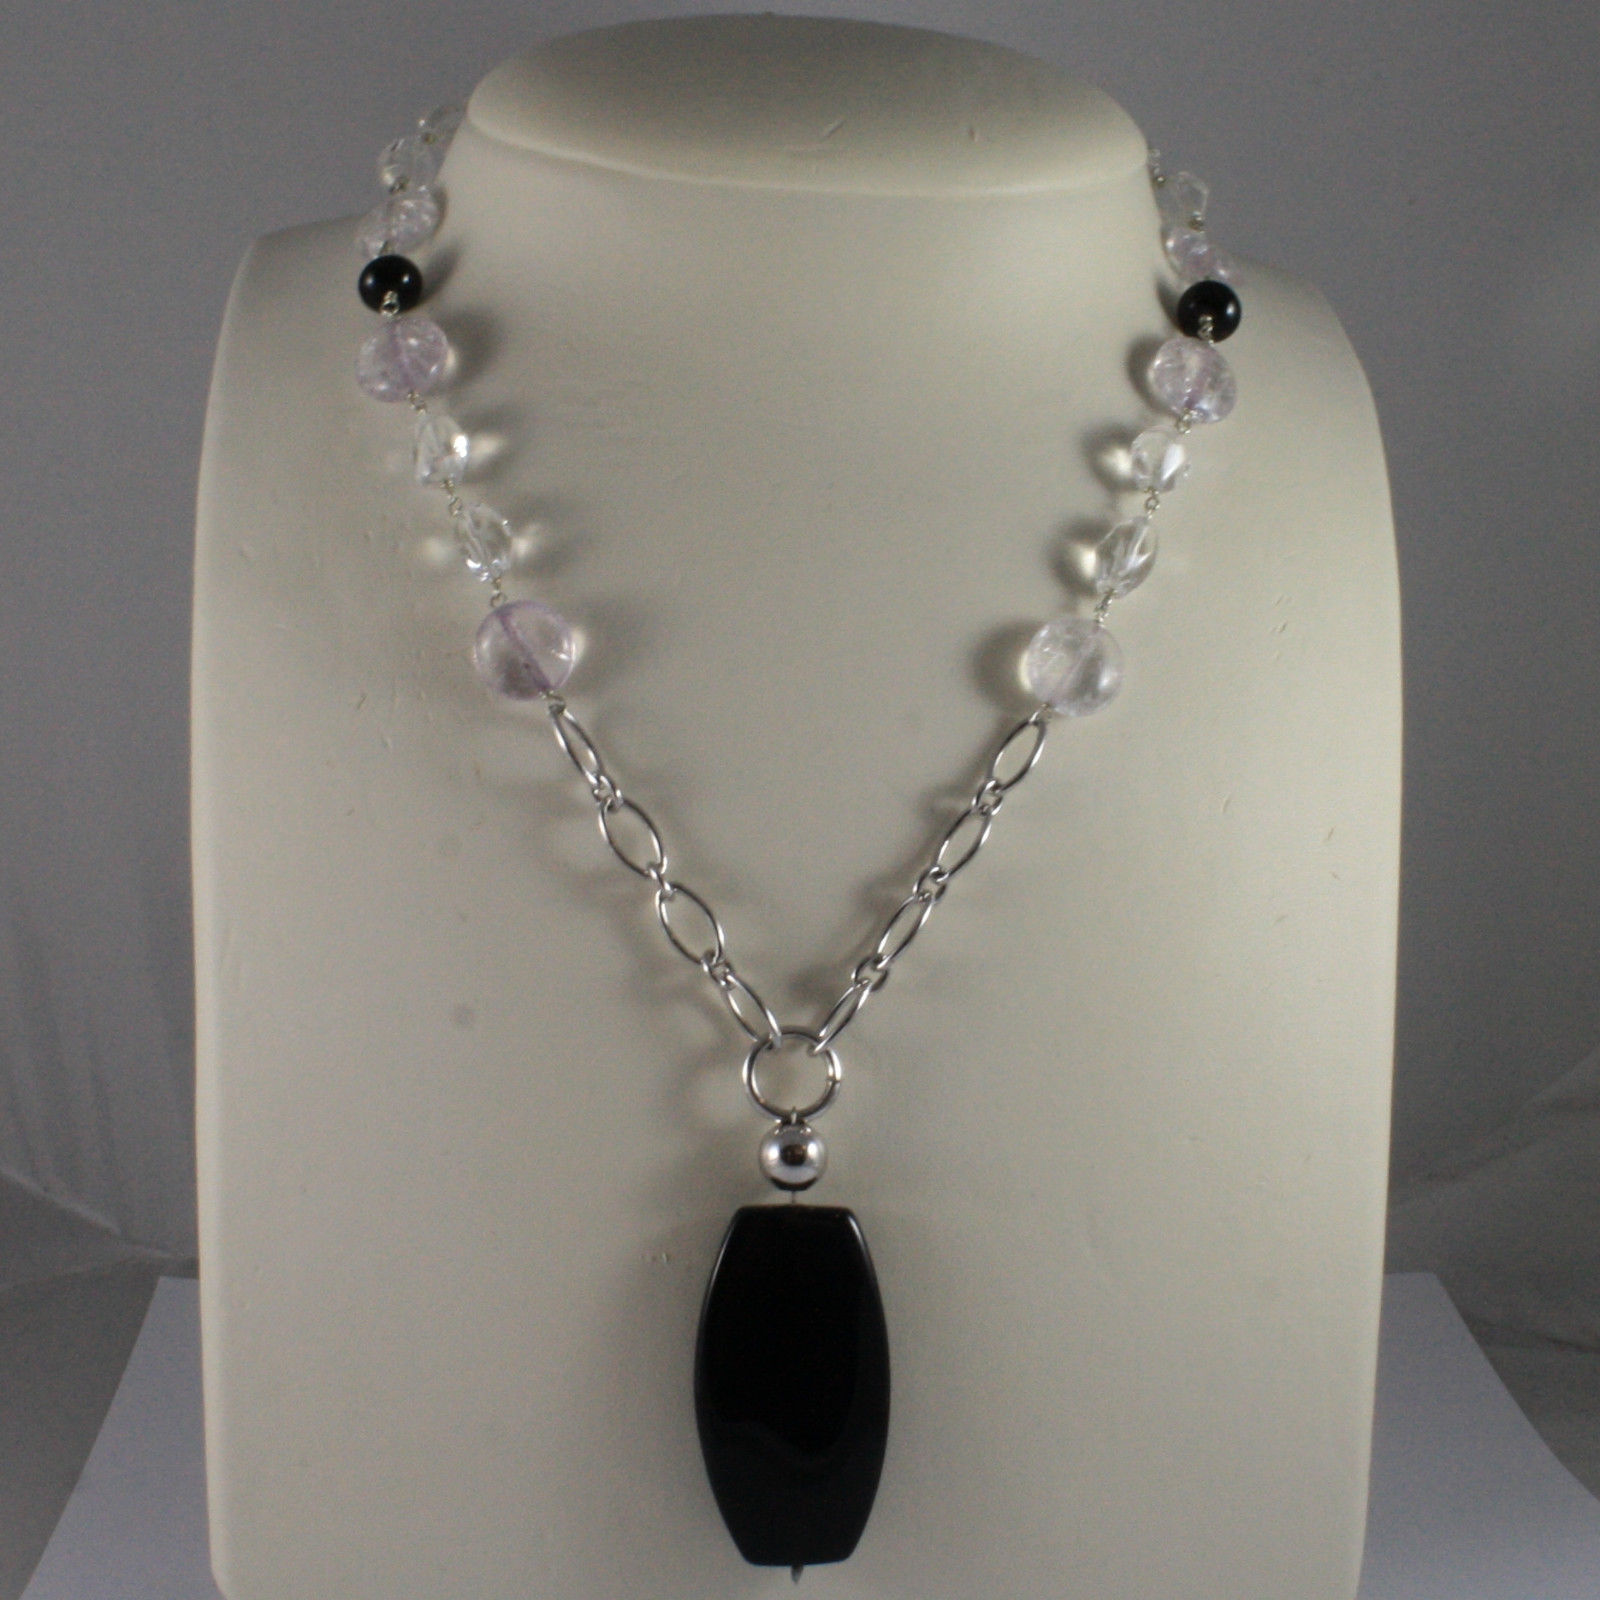 .925 SILVER RHODIUM NECKLACE WITH BLACK ONYX AND TRANSPARENT CRACK CRISTALS